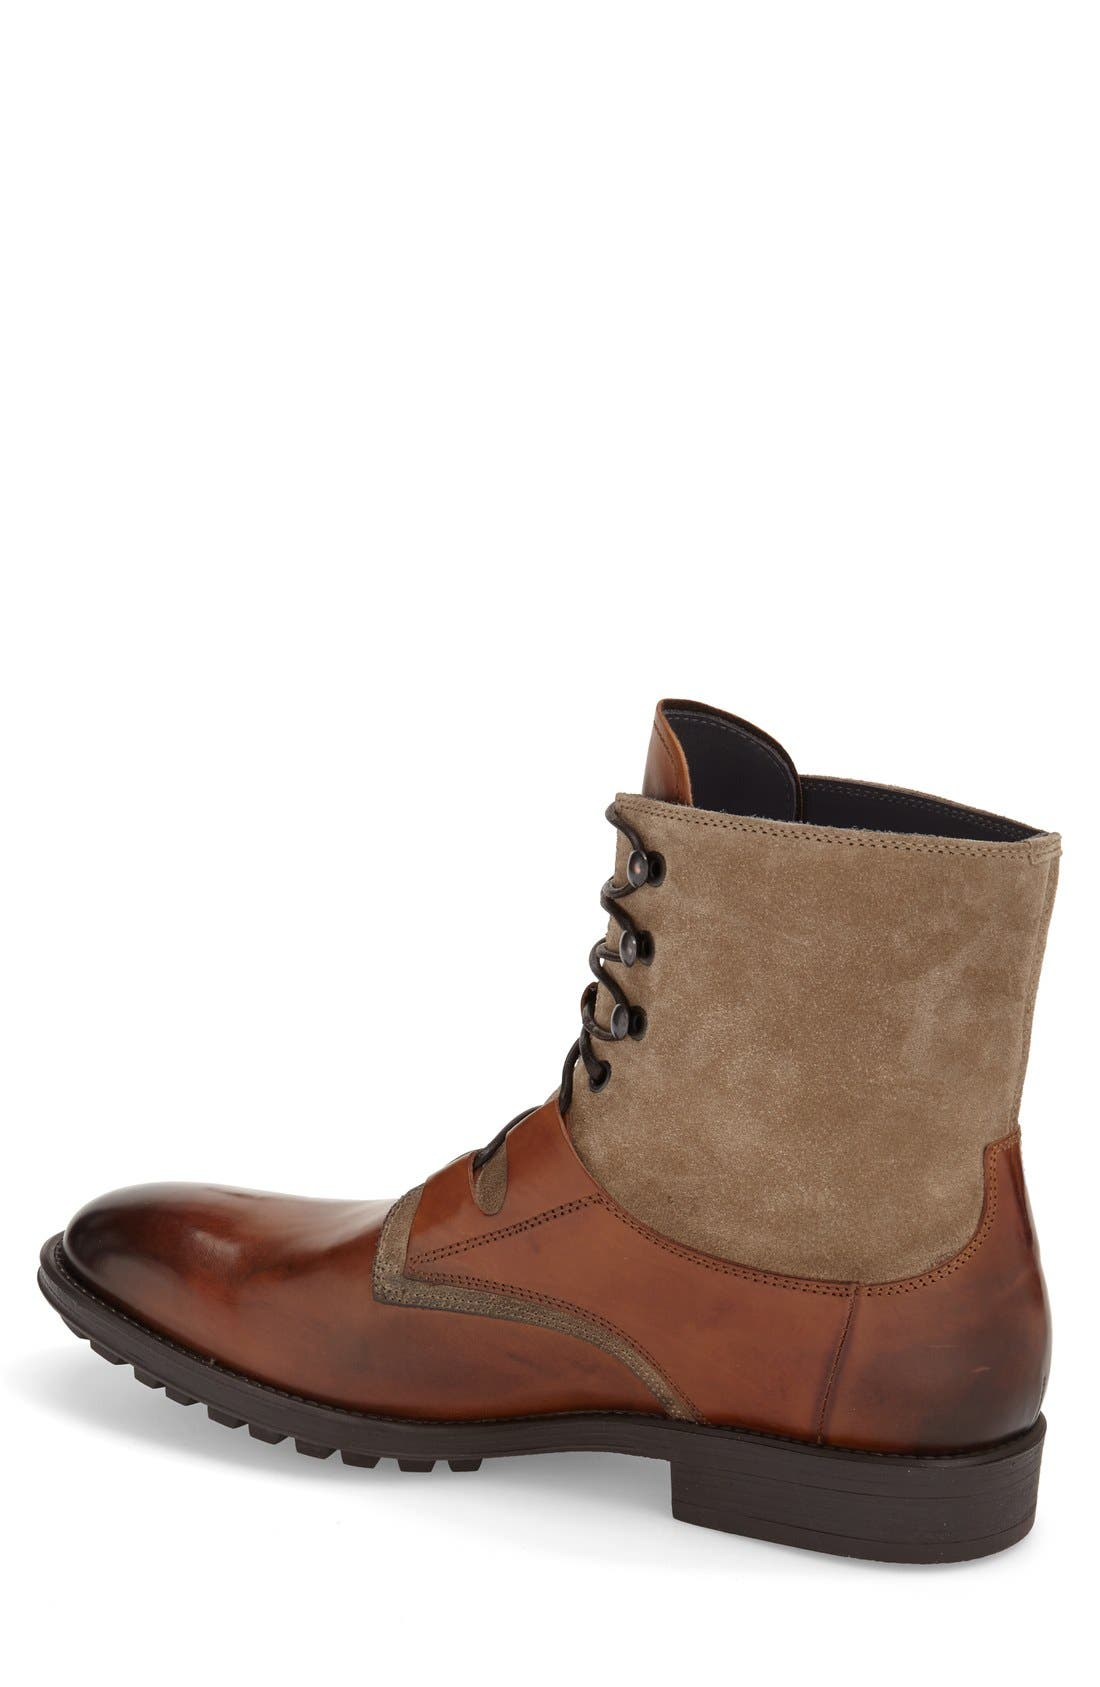 'Blake' Lace-Up Boot,                             Alternate thumbnail 2, color,                             221